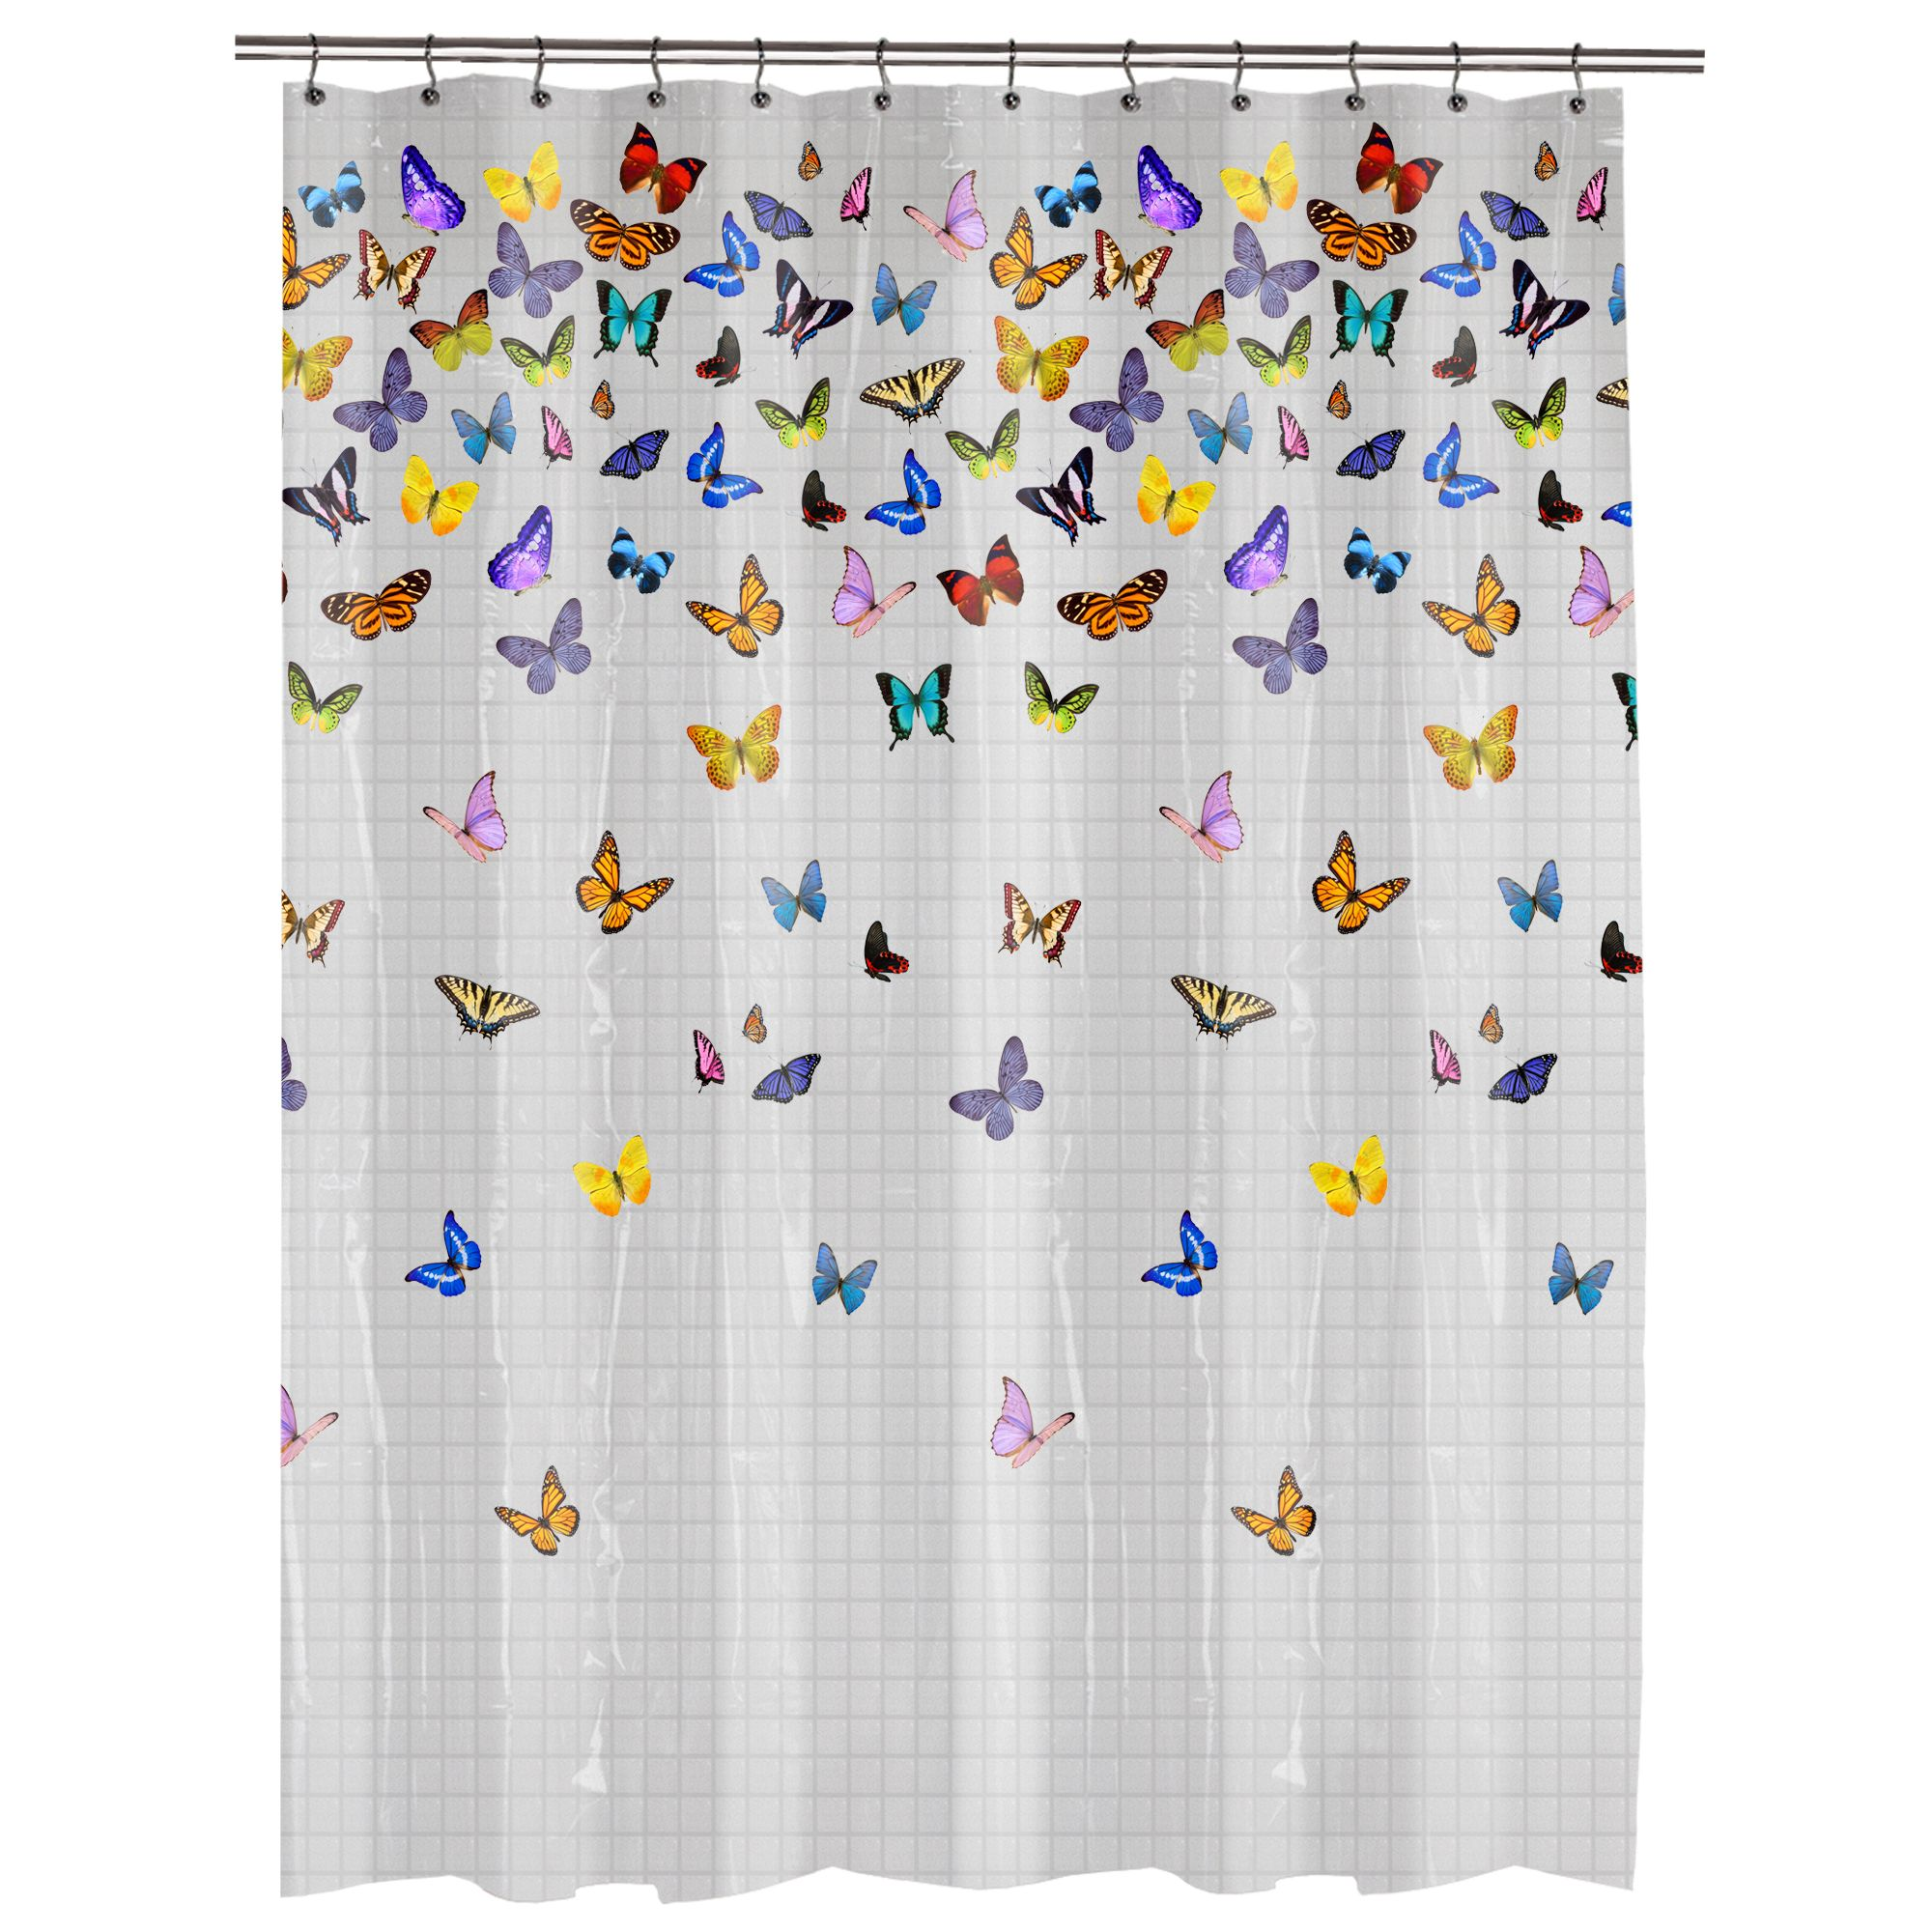 Butterfly Shower Curtain Walmart | Share | Ideas for the House ...